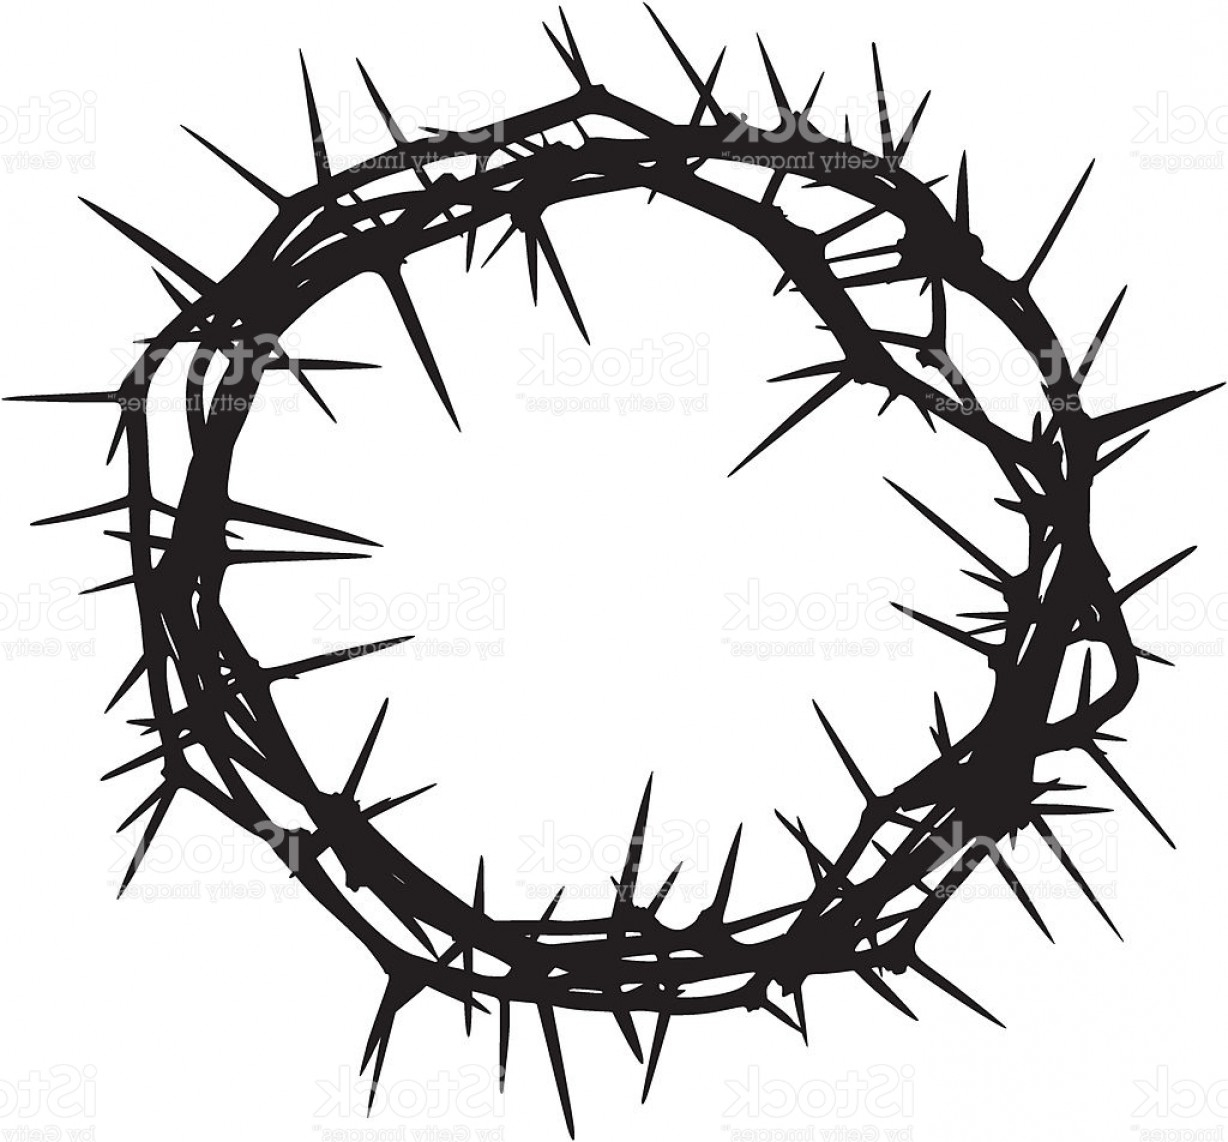 1228x1142 Crown Of Thorns Drawing Exclusive Jesus On Cross With